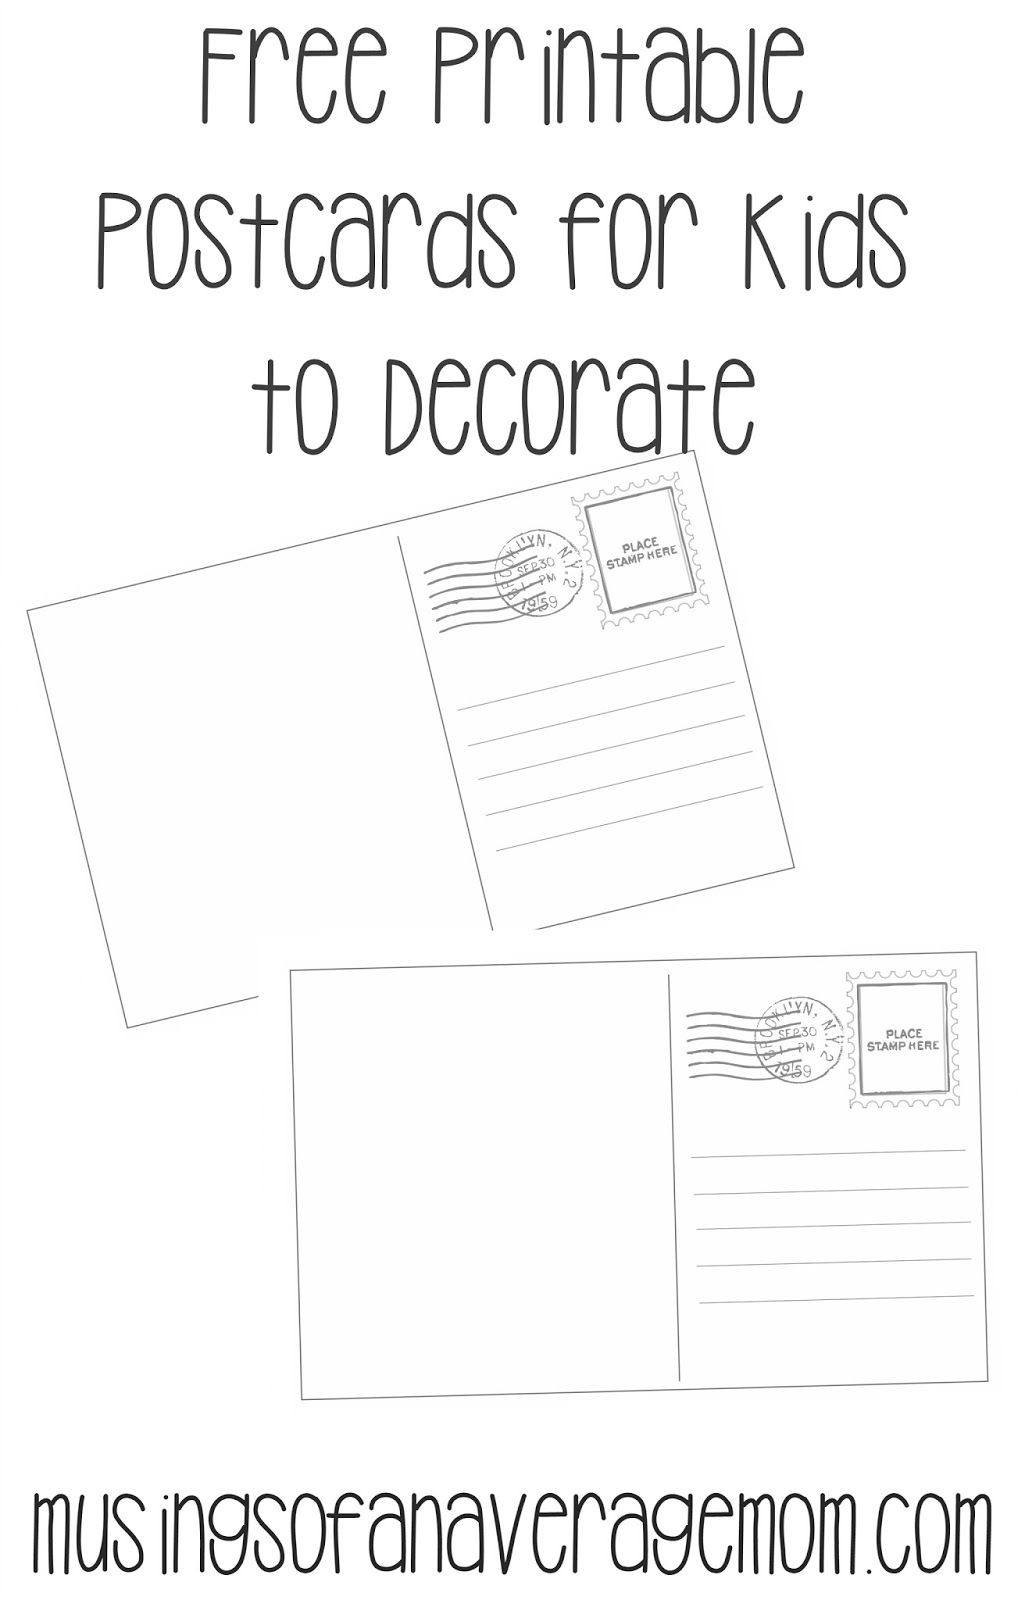 Postcard Templates | Printable Worksheets | Printable Postcards - Free Blank Printable Postcards